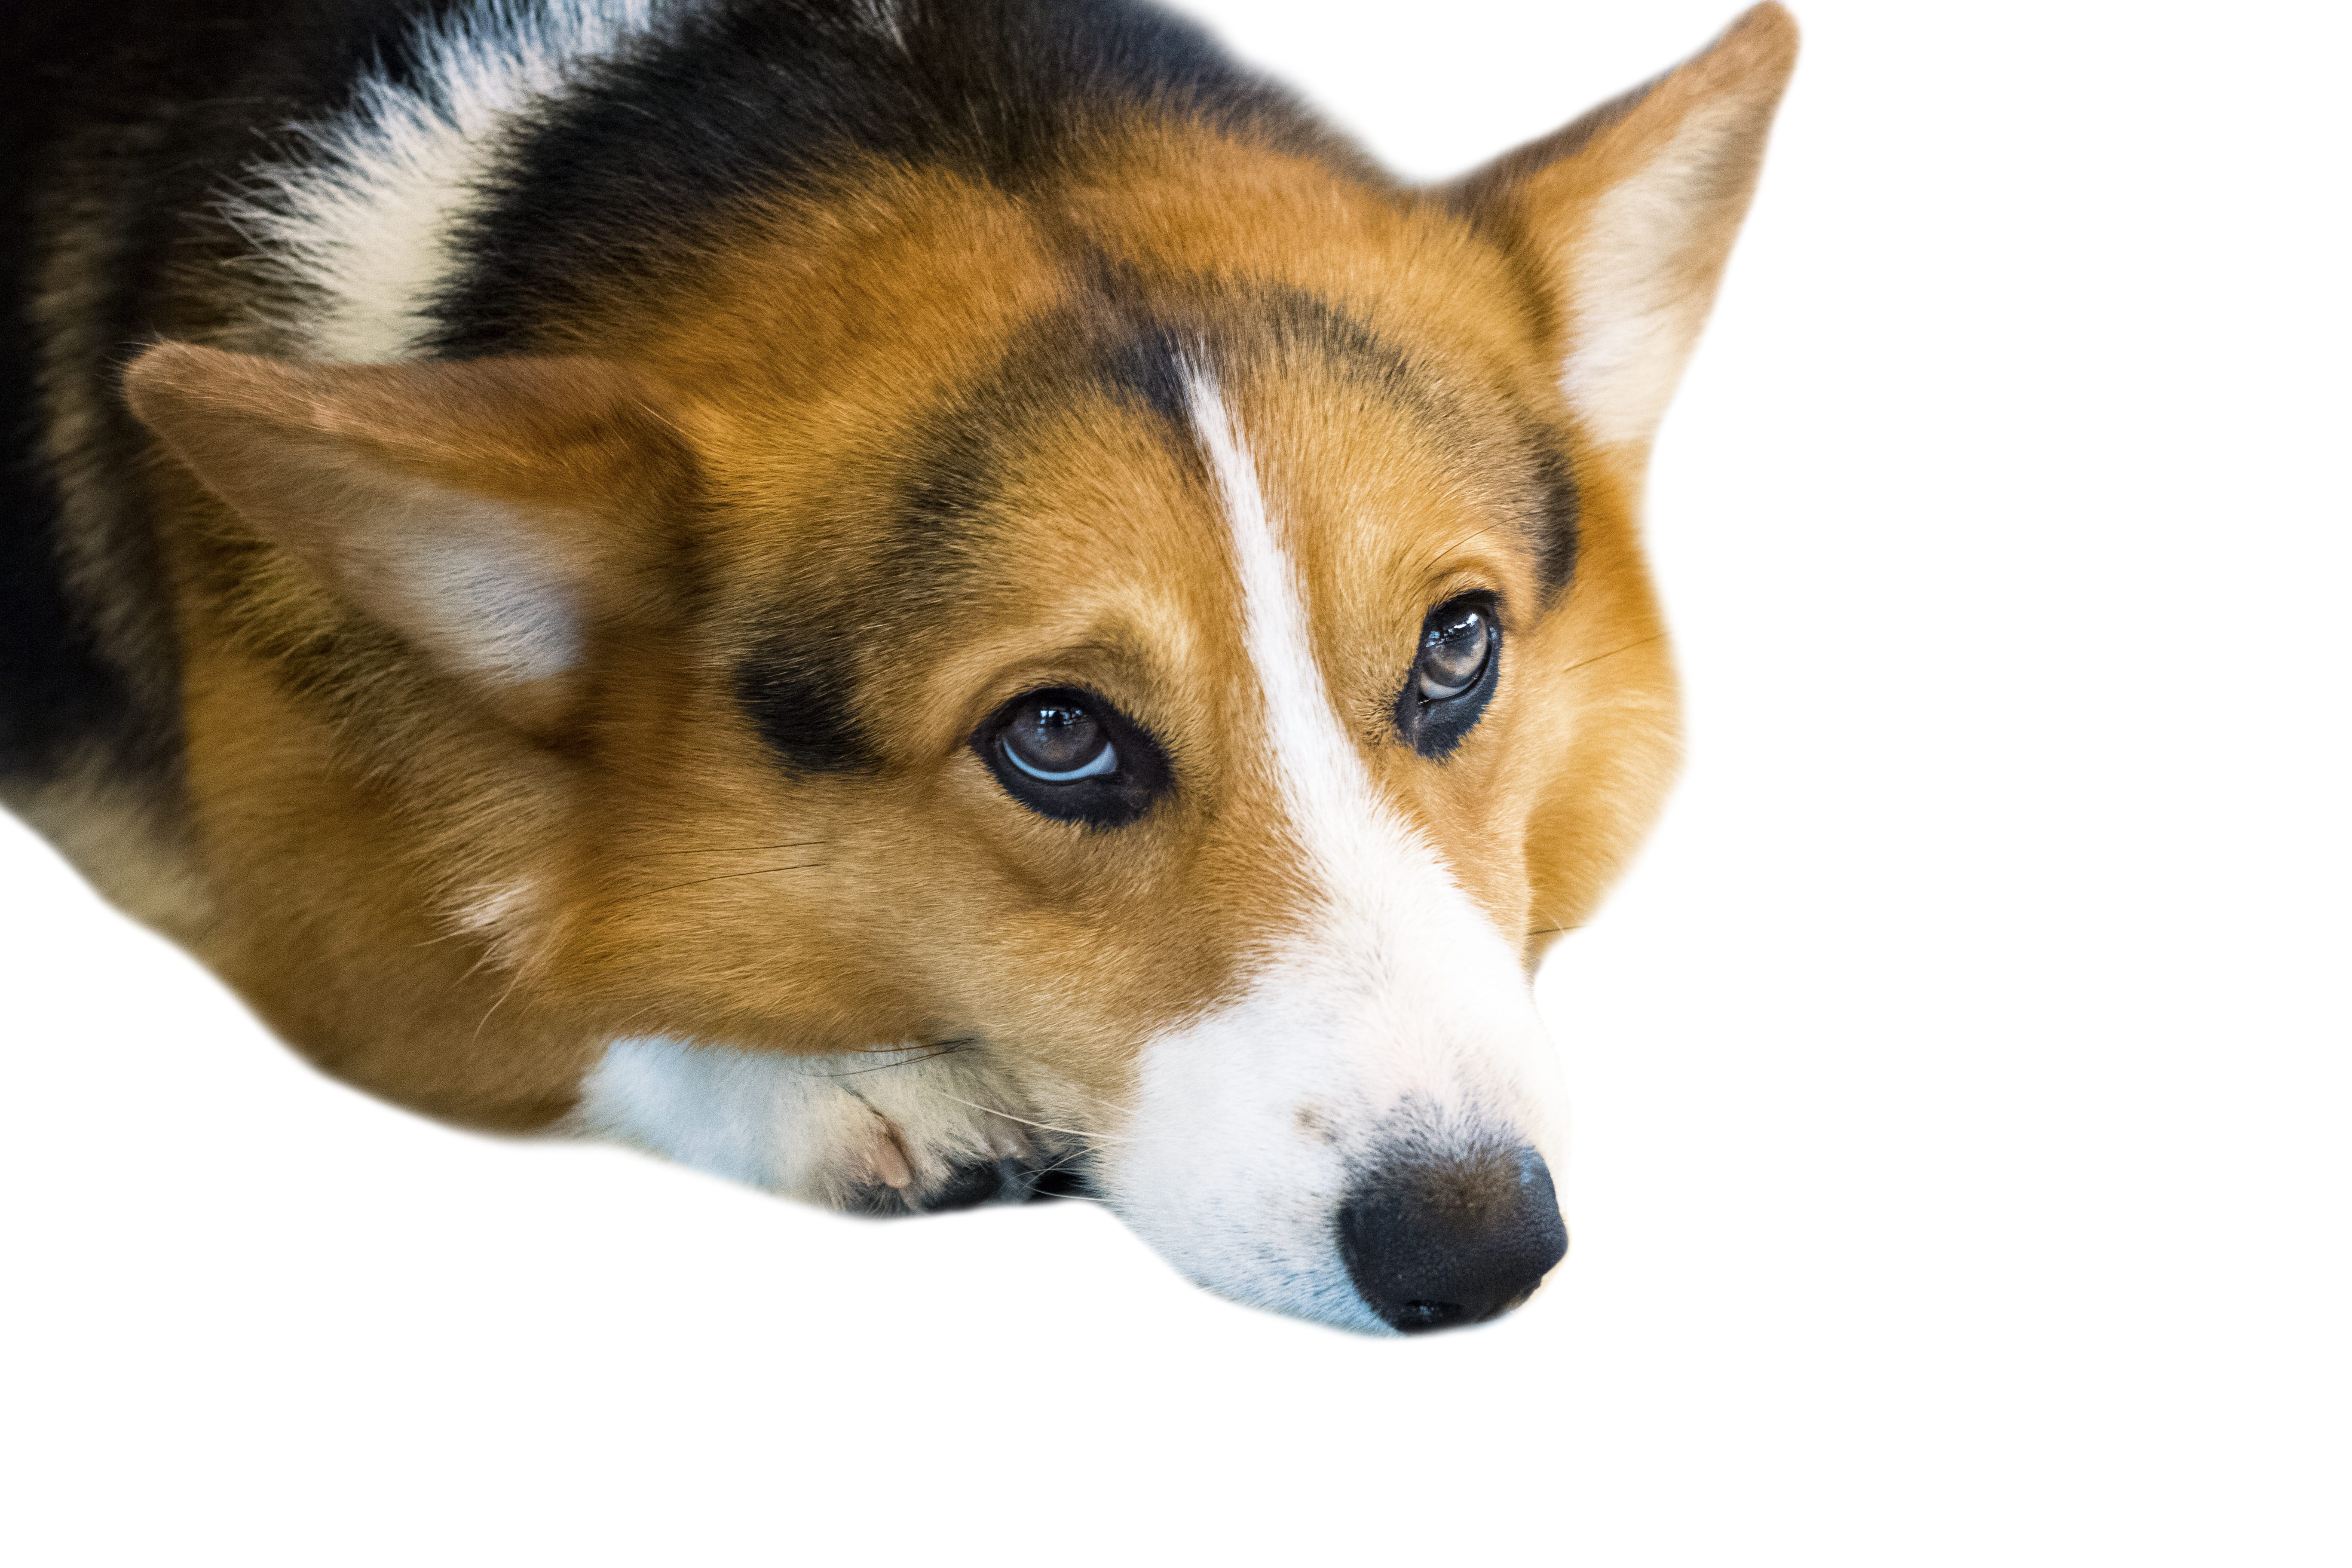 Pembroke Welsh Corgi isolate on background,front view , technical cost-up.